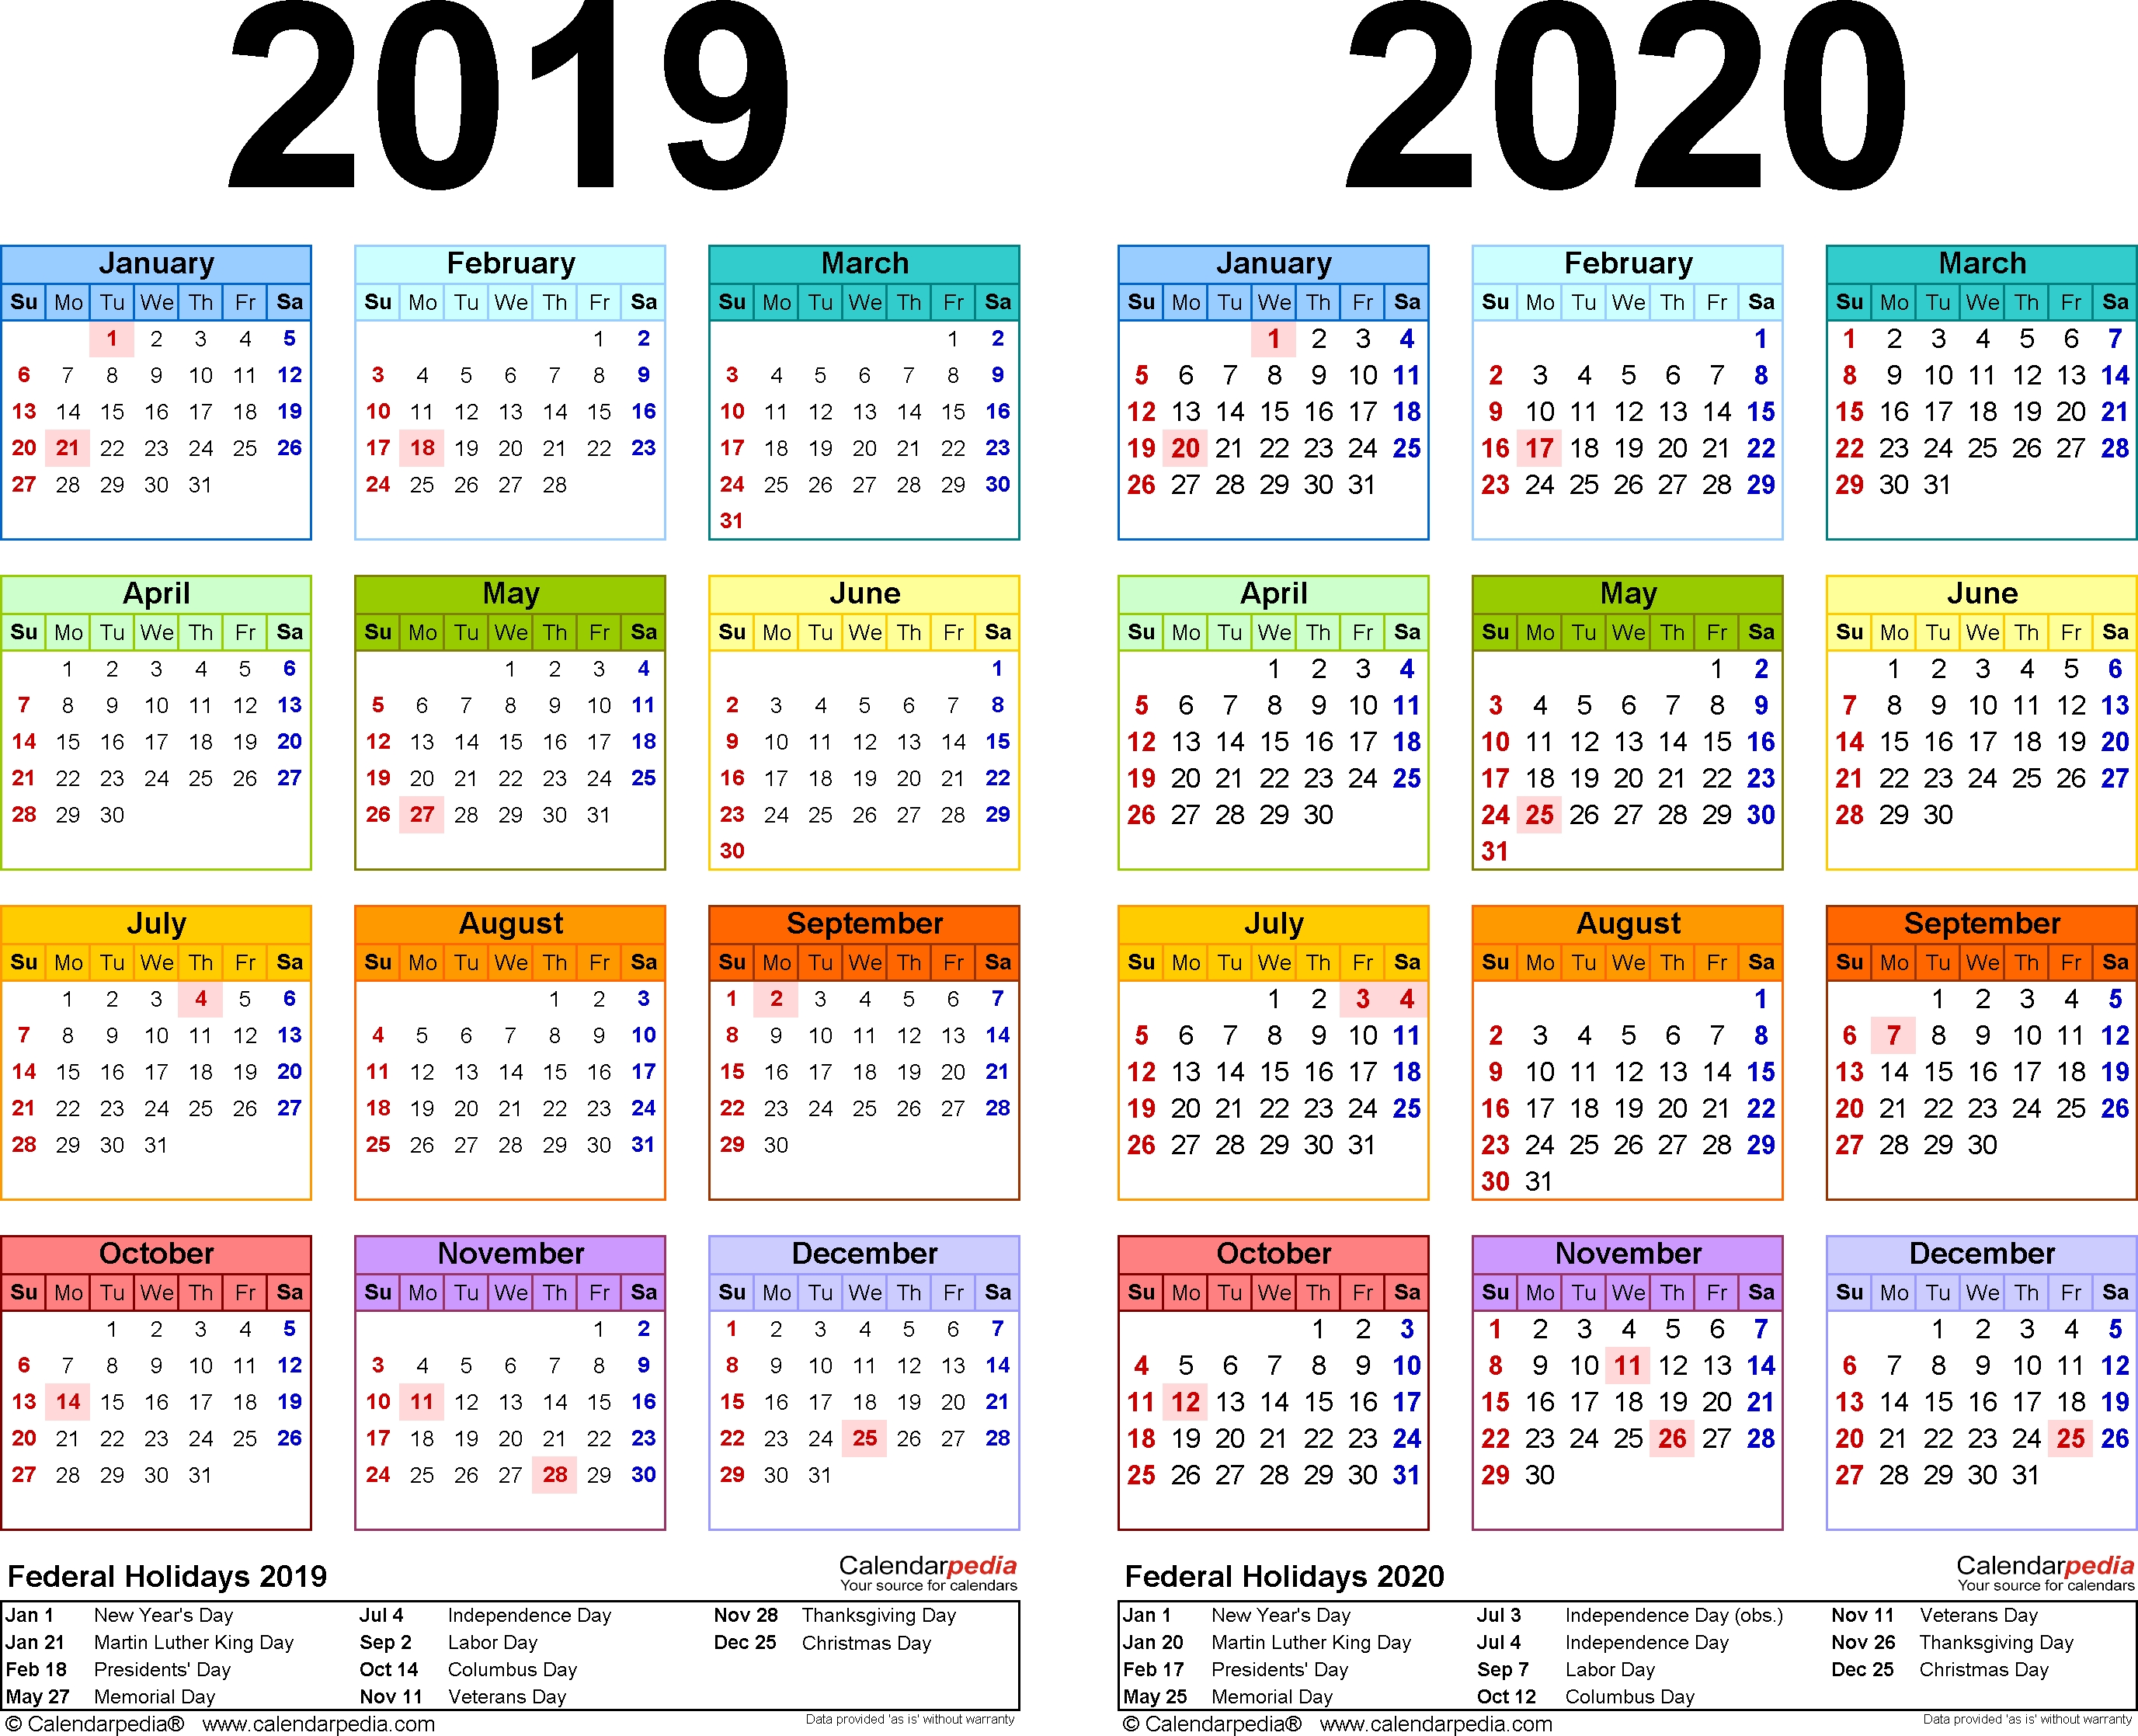 2019-2020 Calendar - Free Printable Two-Year Pdf Calendars intended for 2019 2020 Year At A Glance Printable